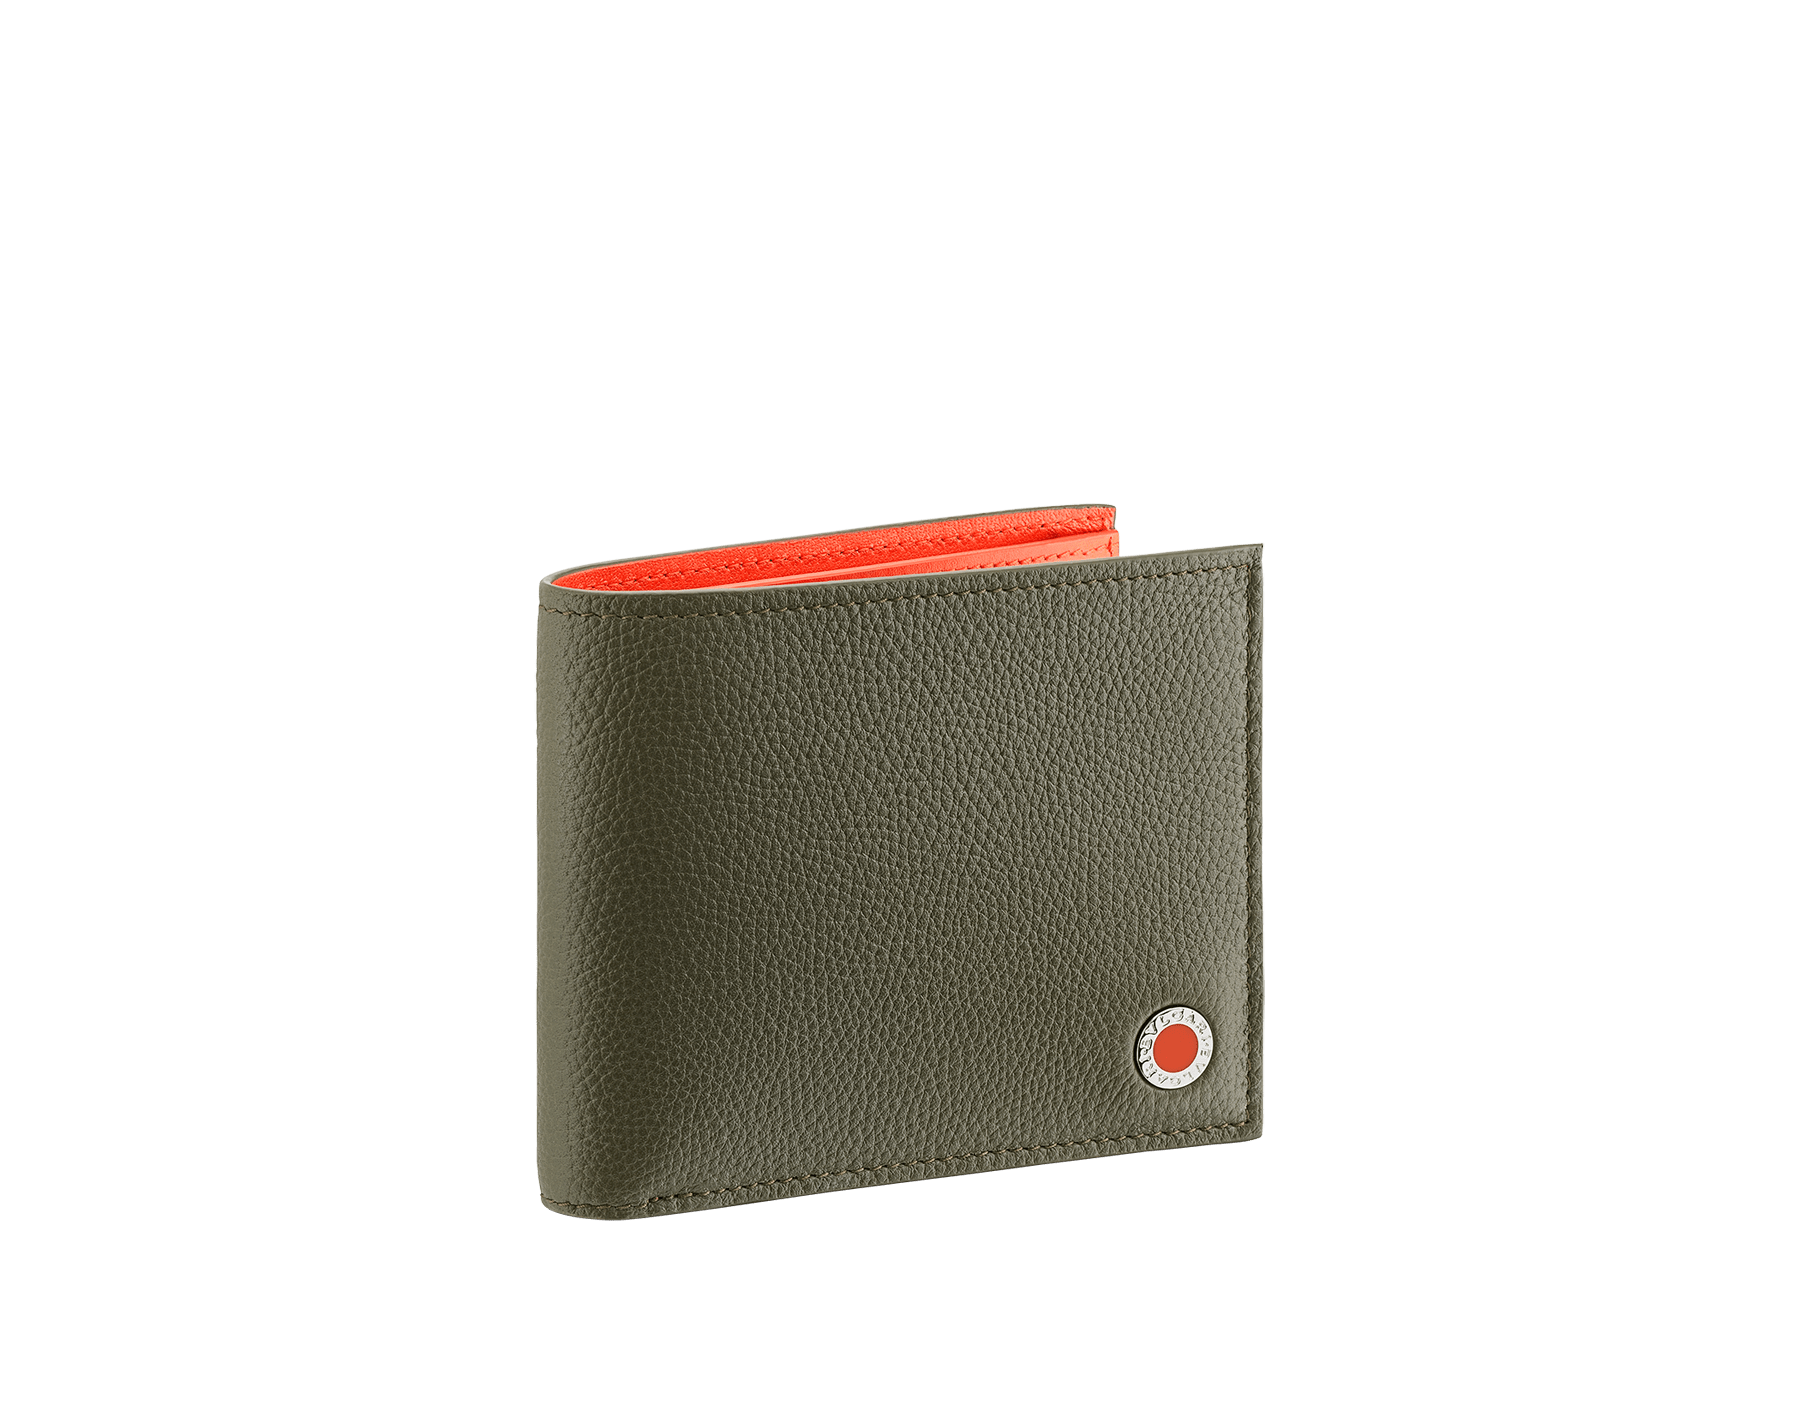 """BVLGARI BVLGARI"" hipster compact wallet in mimetic jade soft full grain calf leather and fire amber calf leather. Iconic logo decoration in palladium plated brass coloured in fire amber enamel. 290077 image 1"